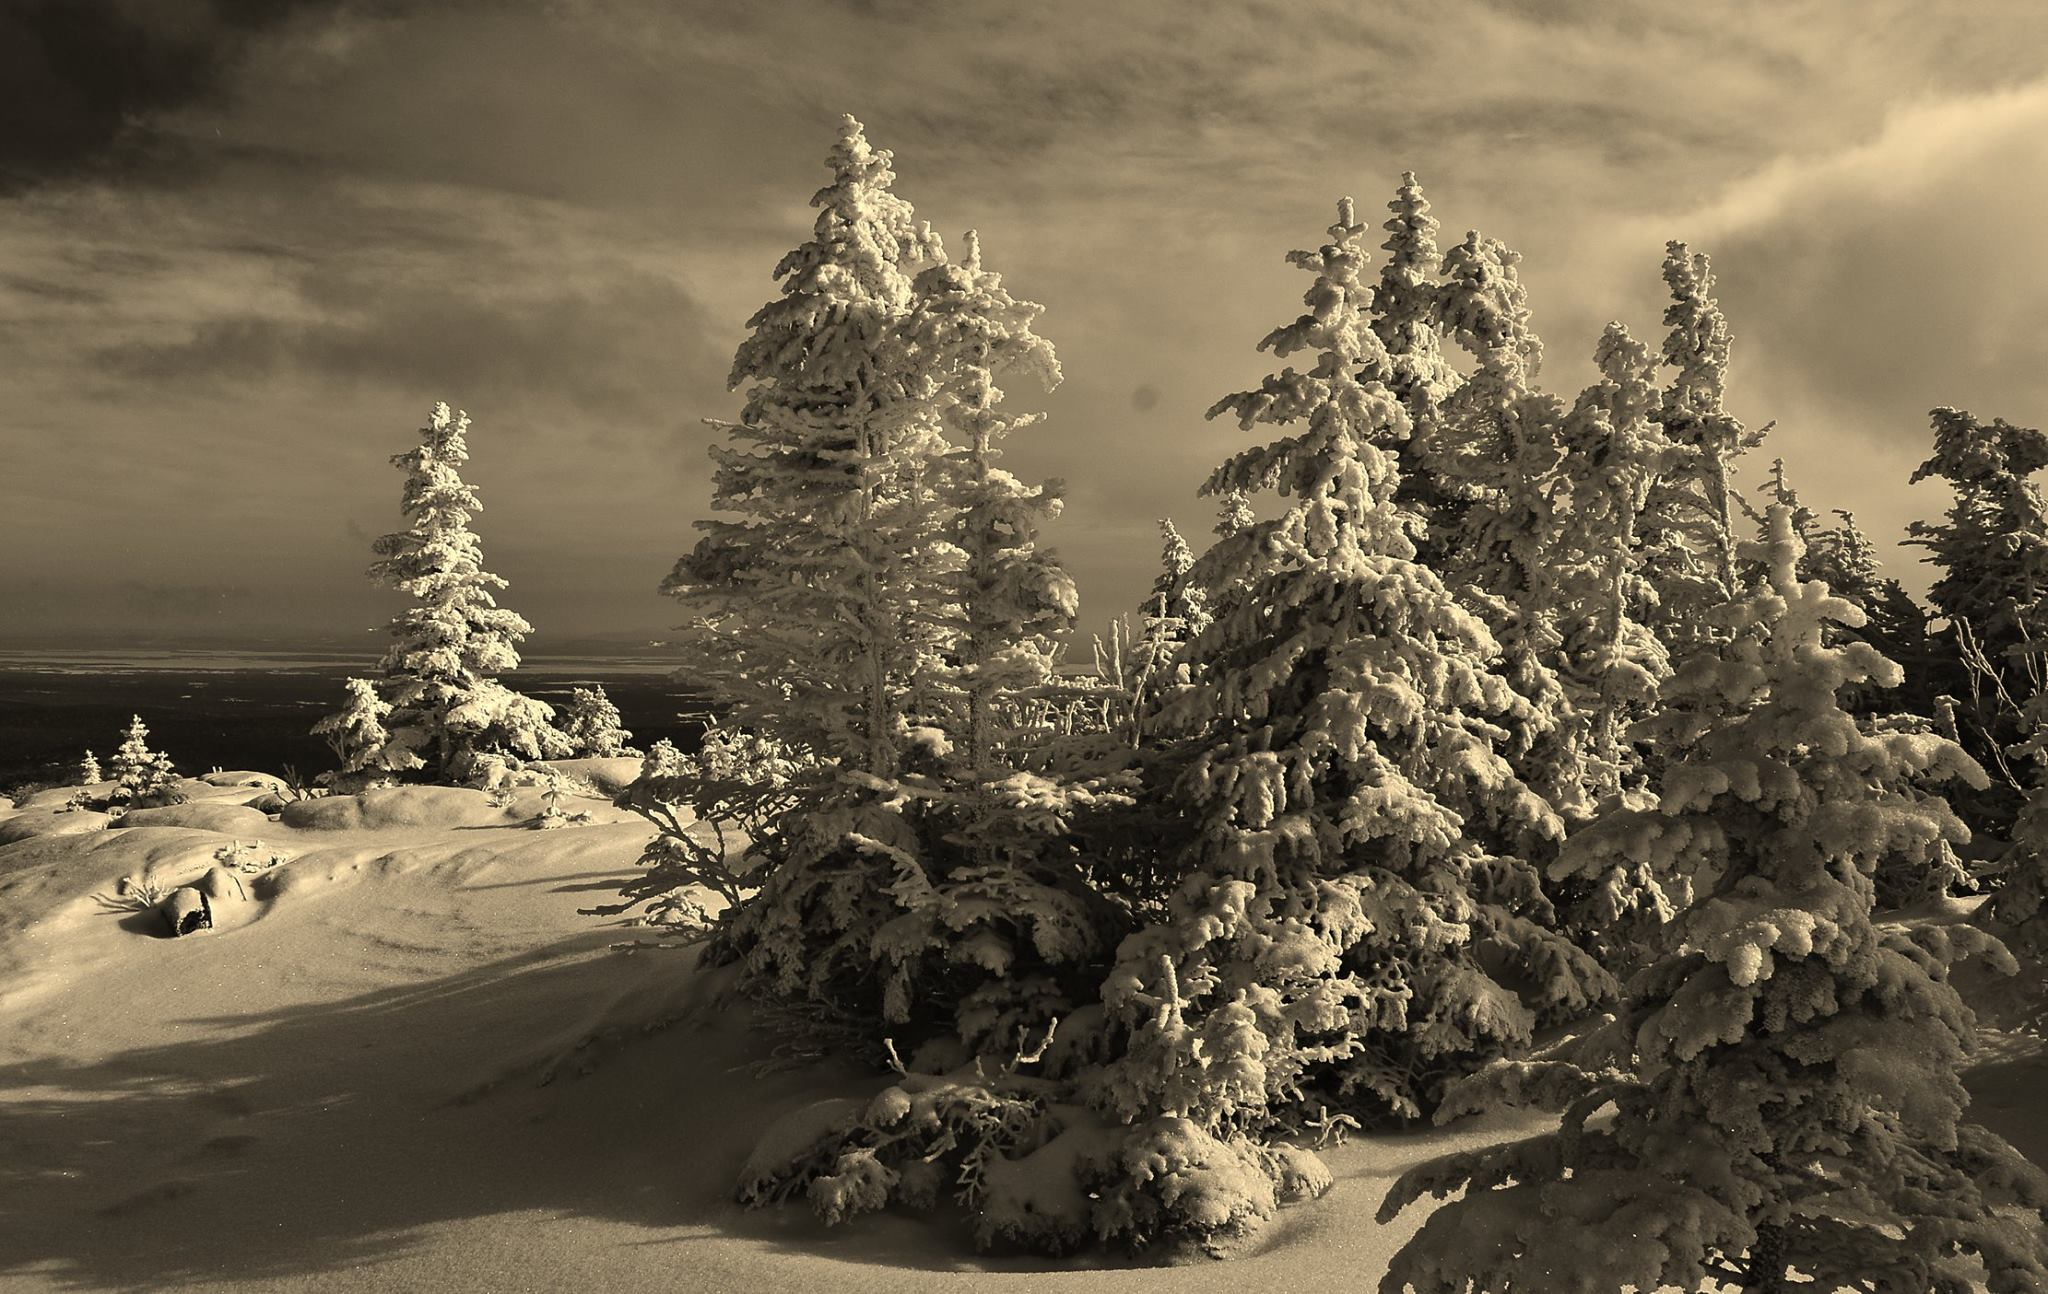 ADK Pic of the Week Scott Yakey: Winter Wonderland